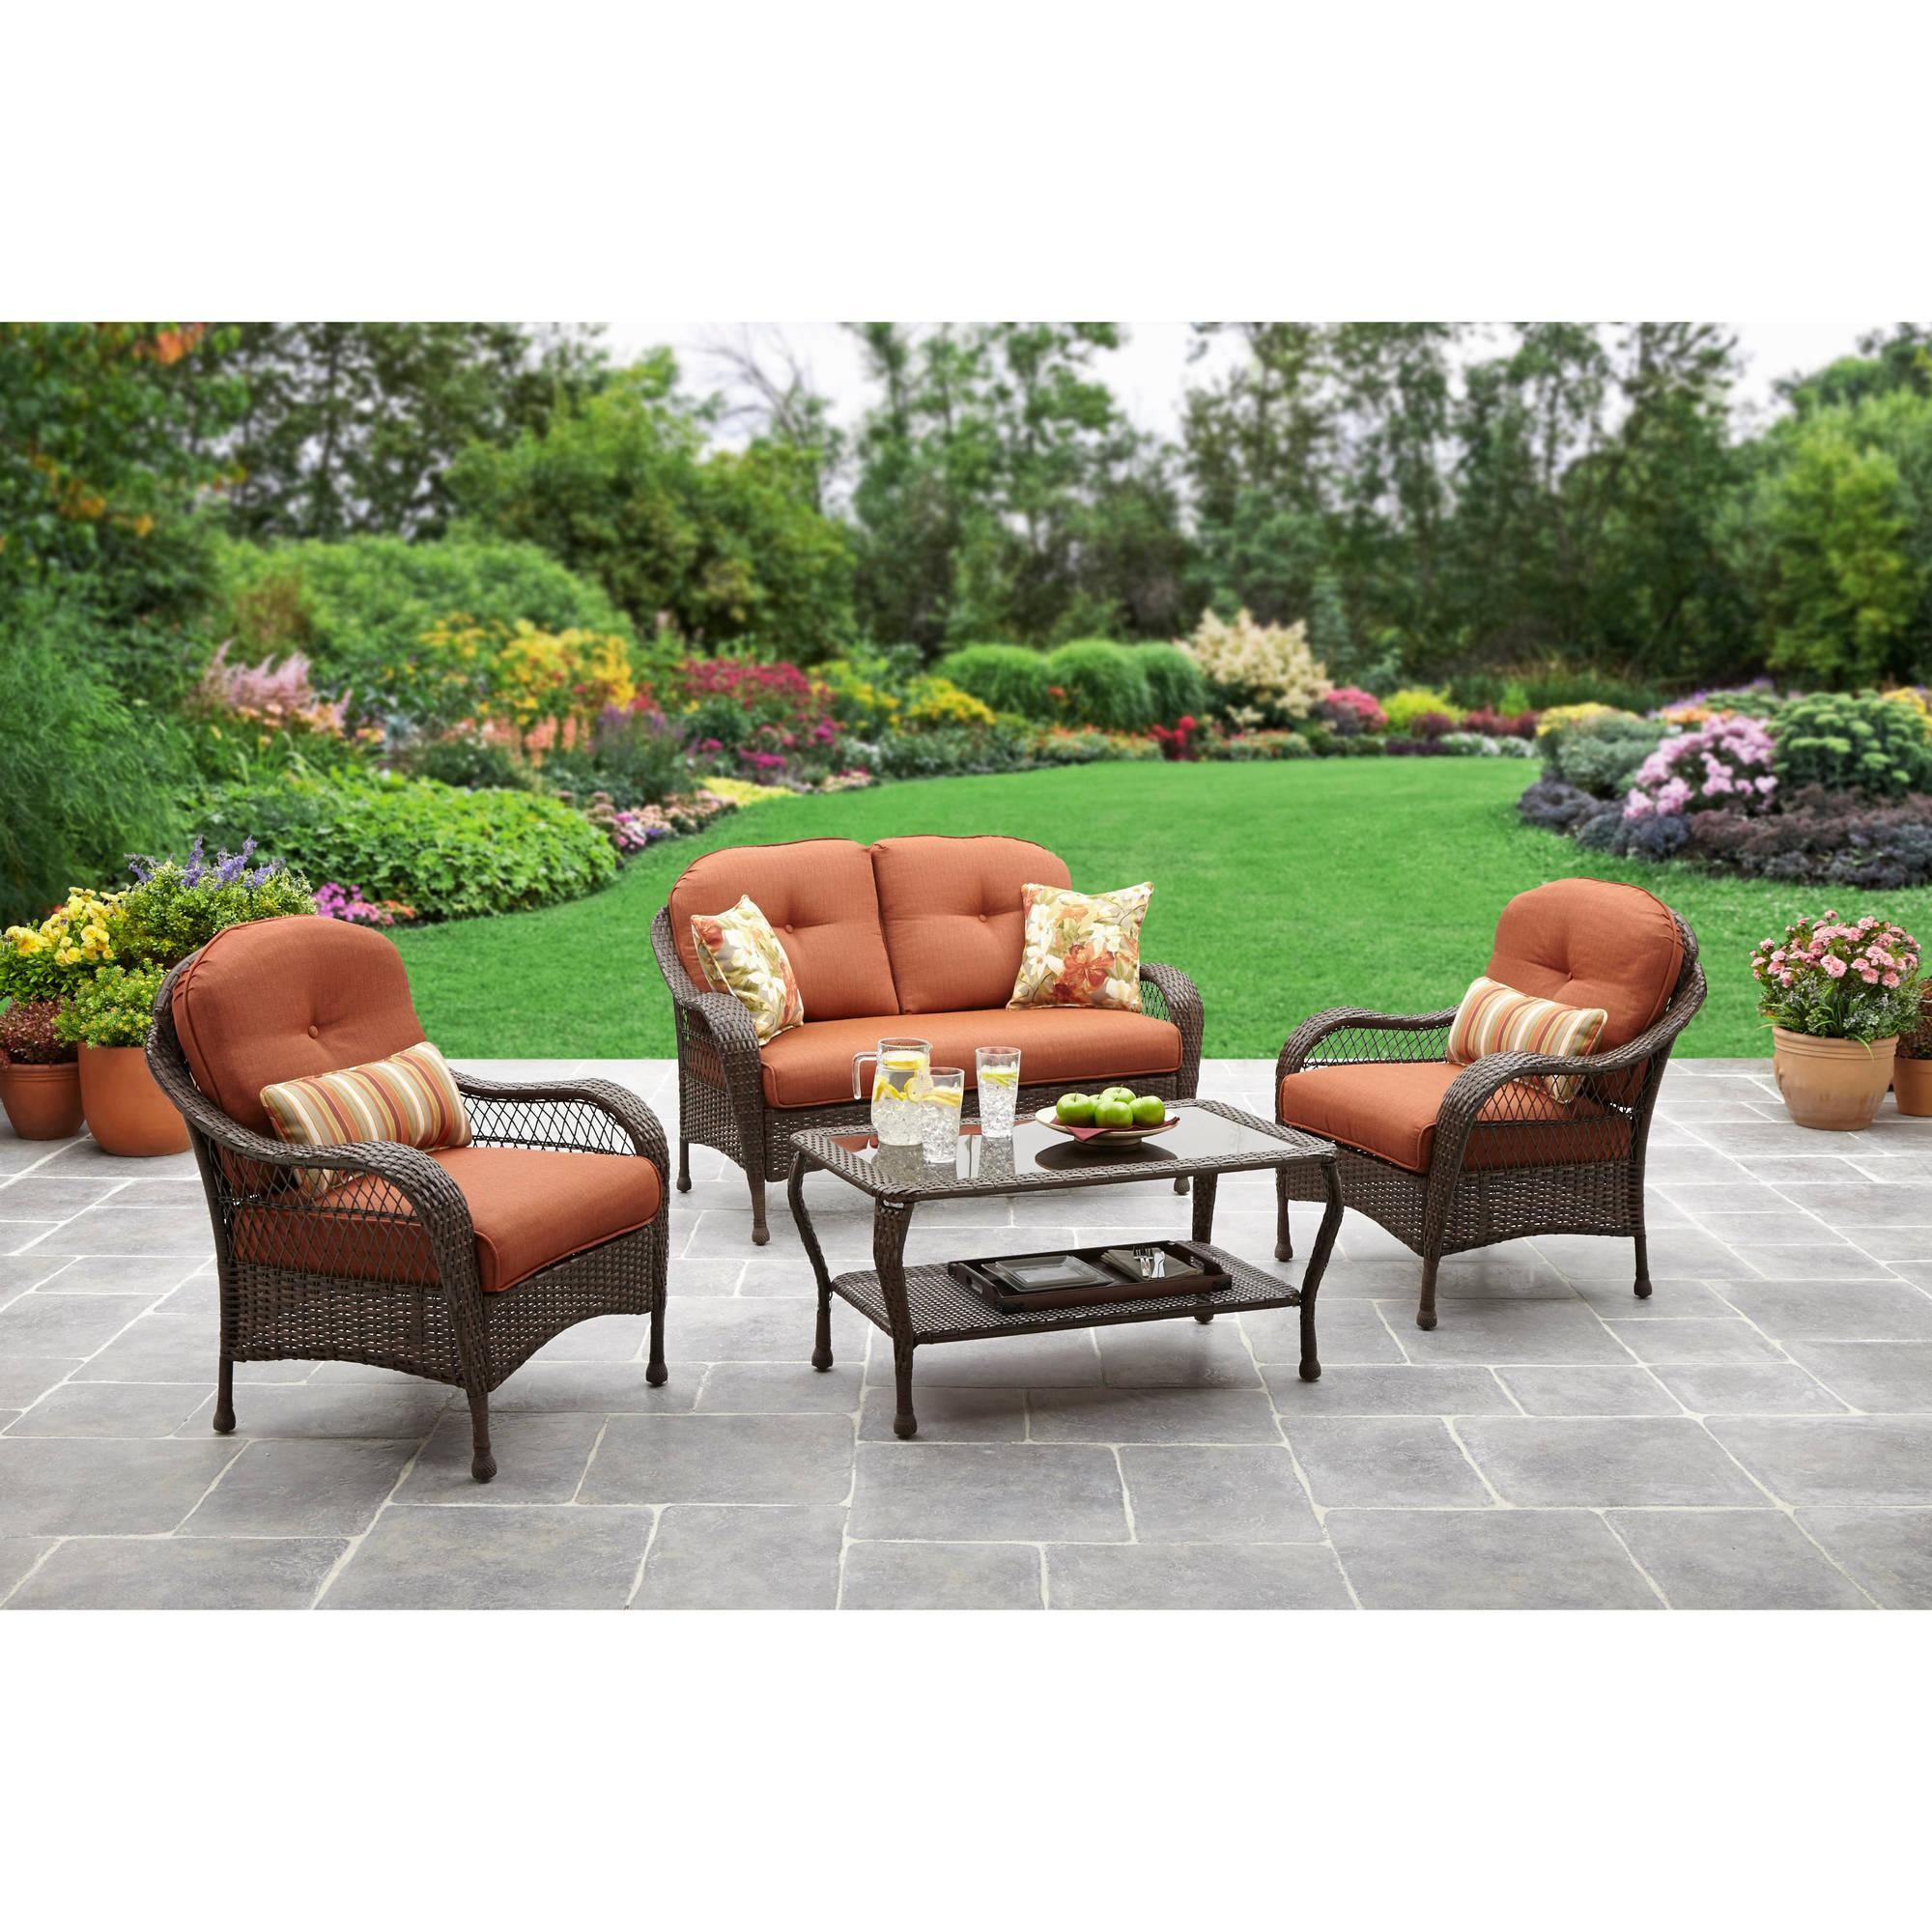 Cheap Seat Cushions Outdoor Furniture Find Seat Cushions Outdoor